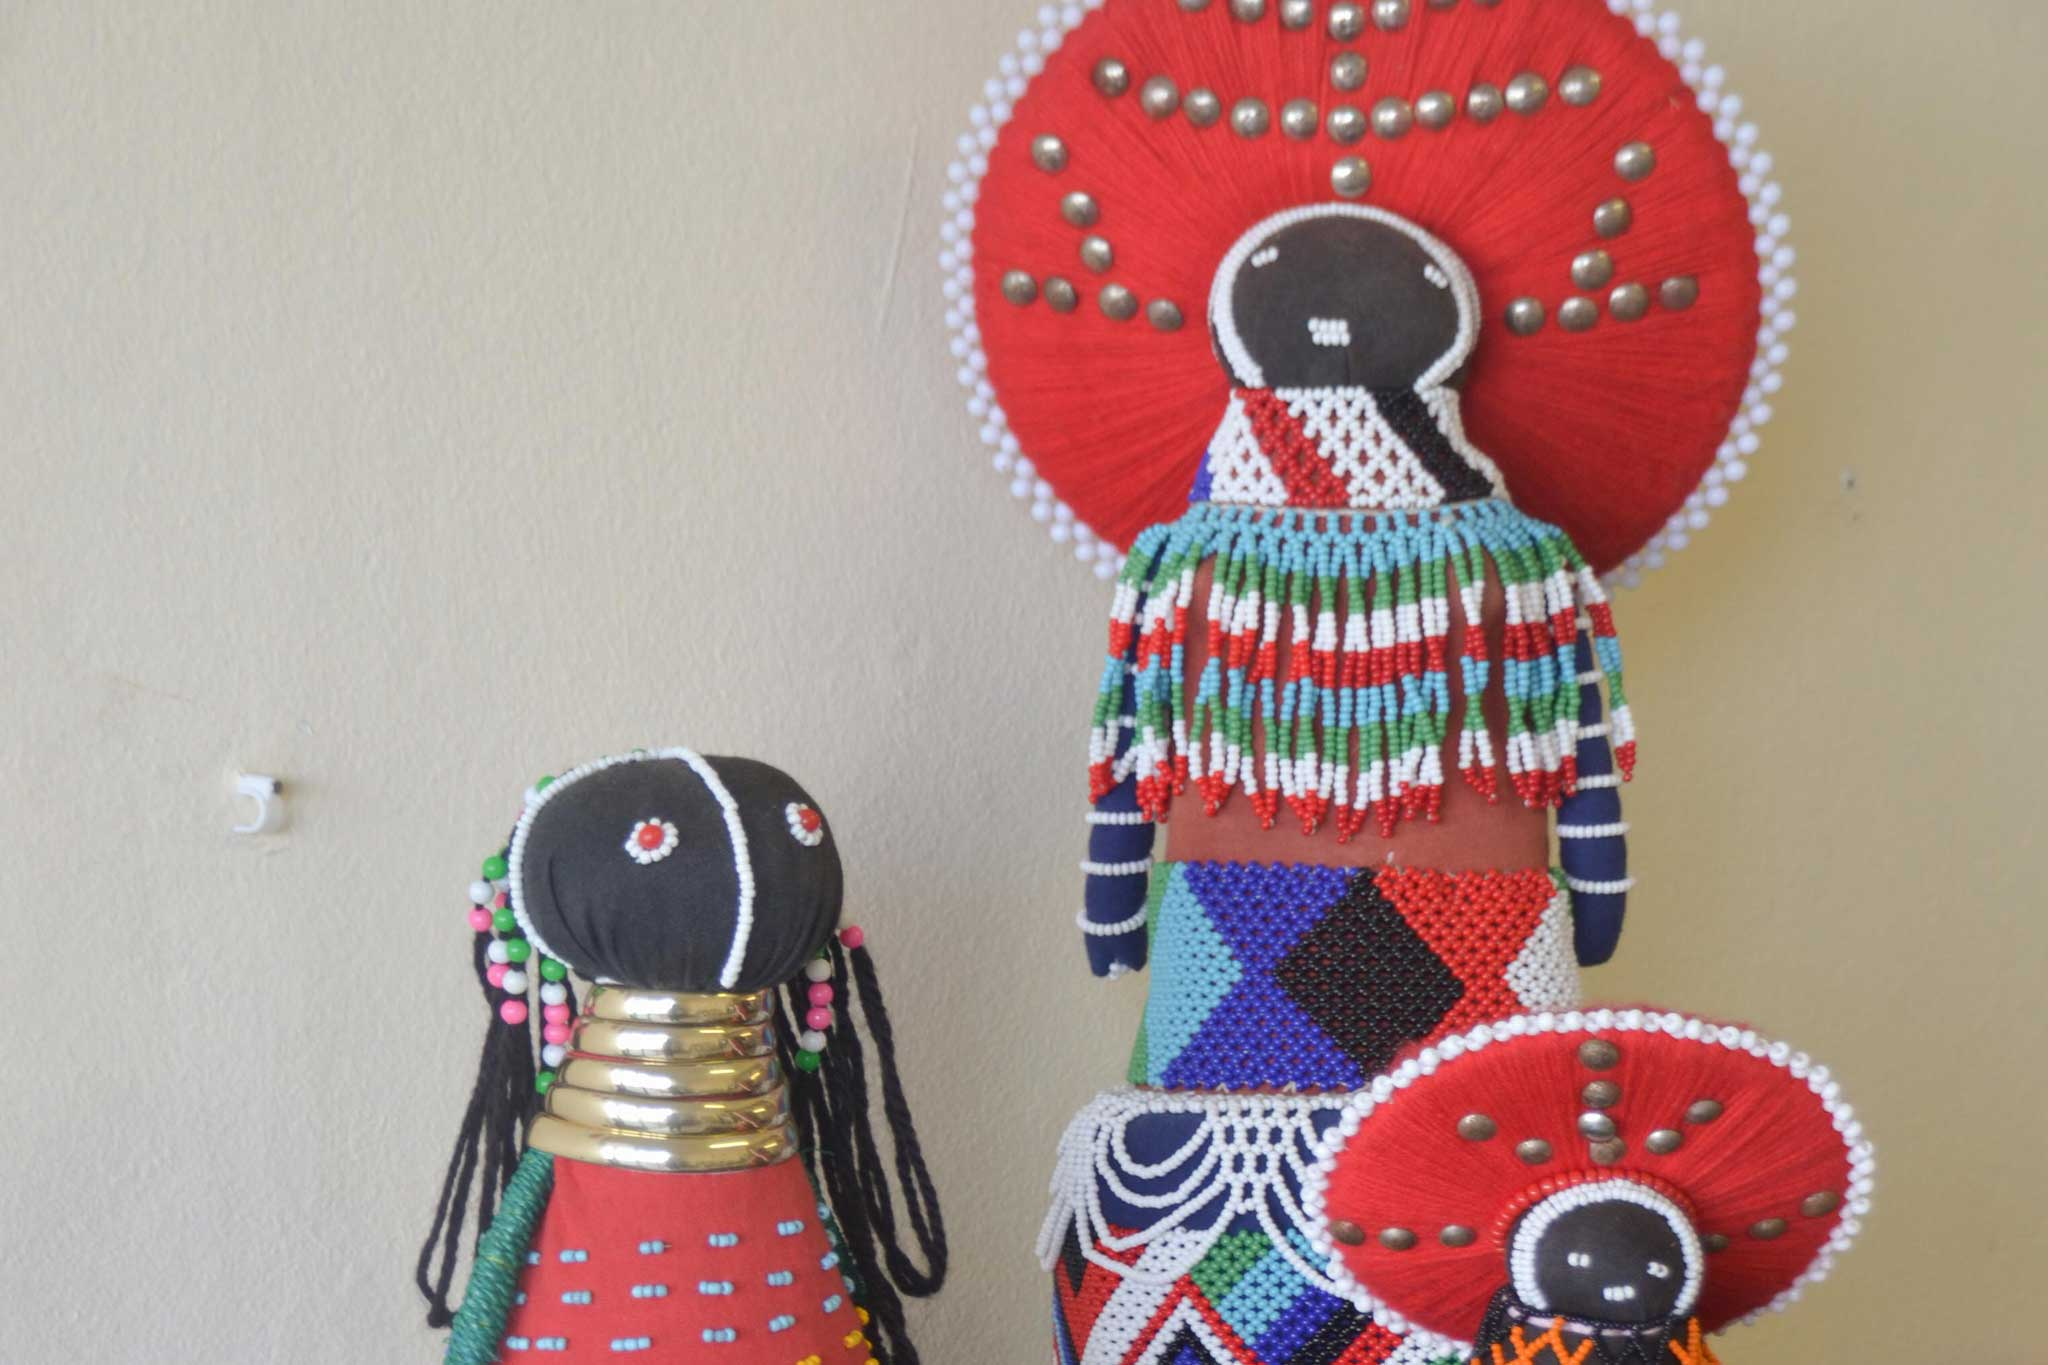 LOBOLILE OR ZULU DOLL